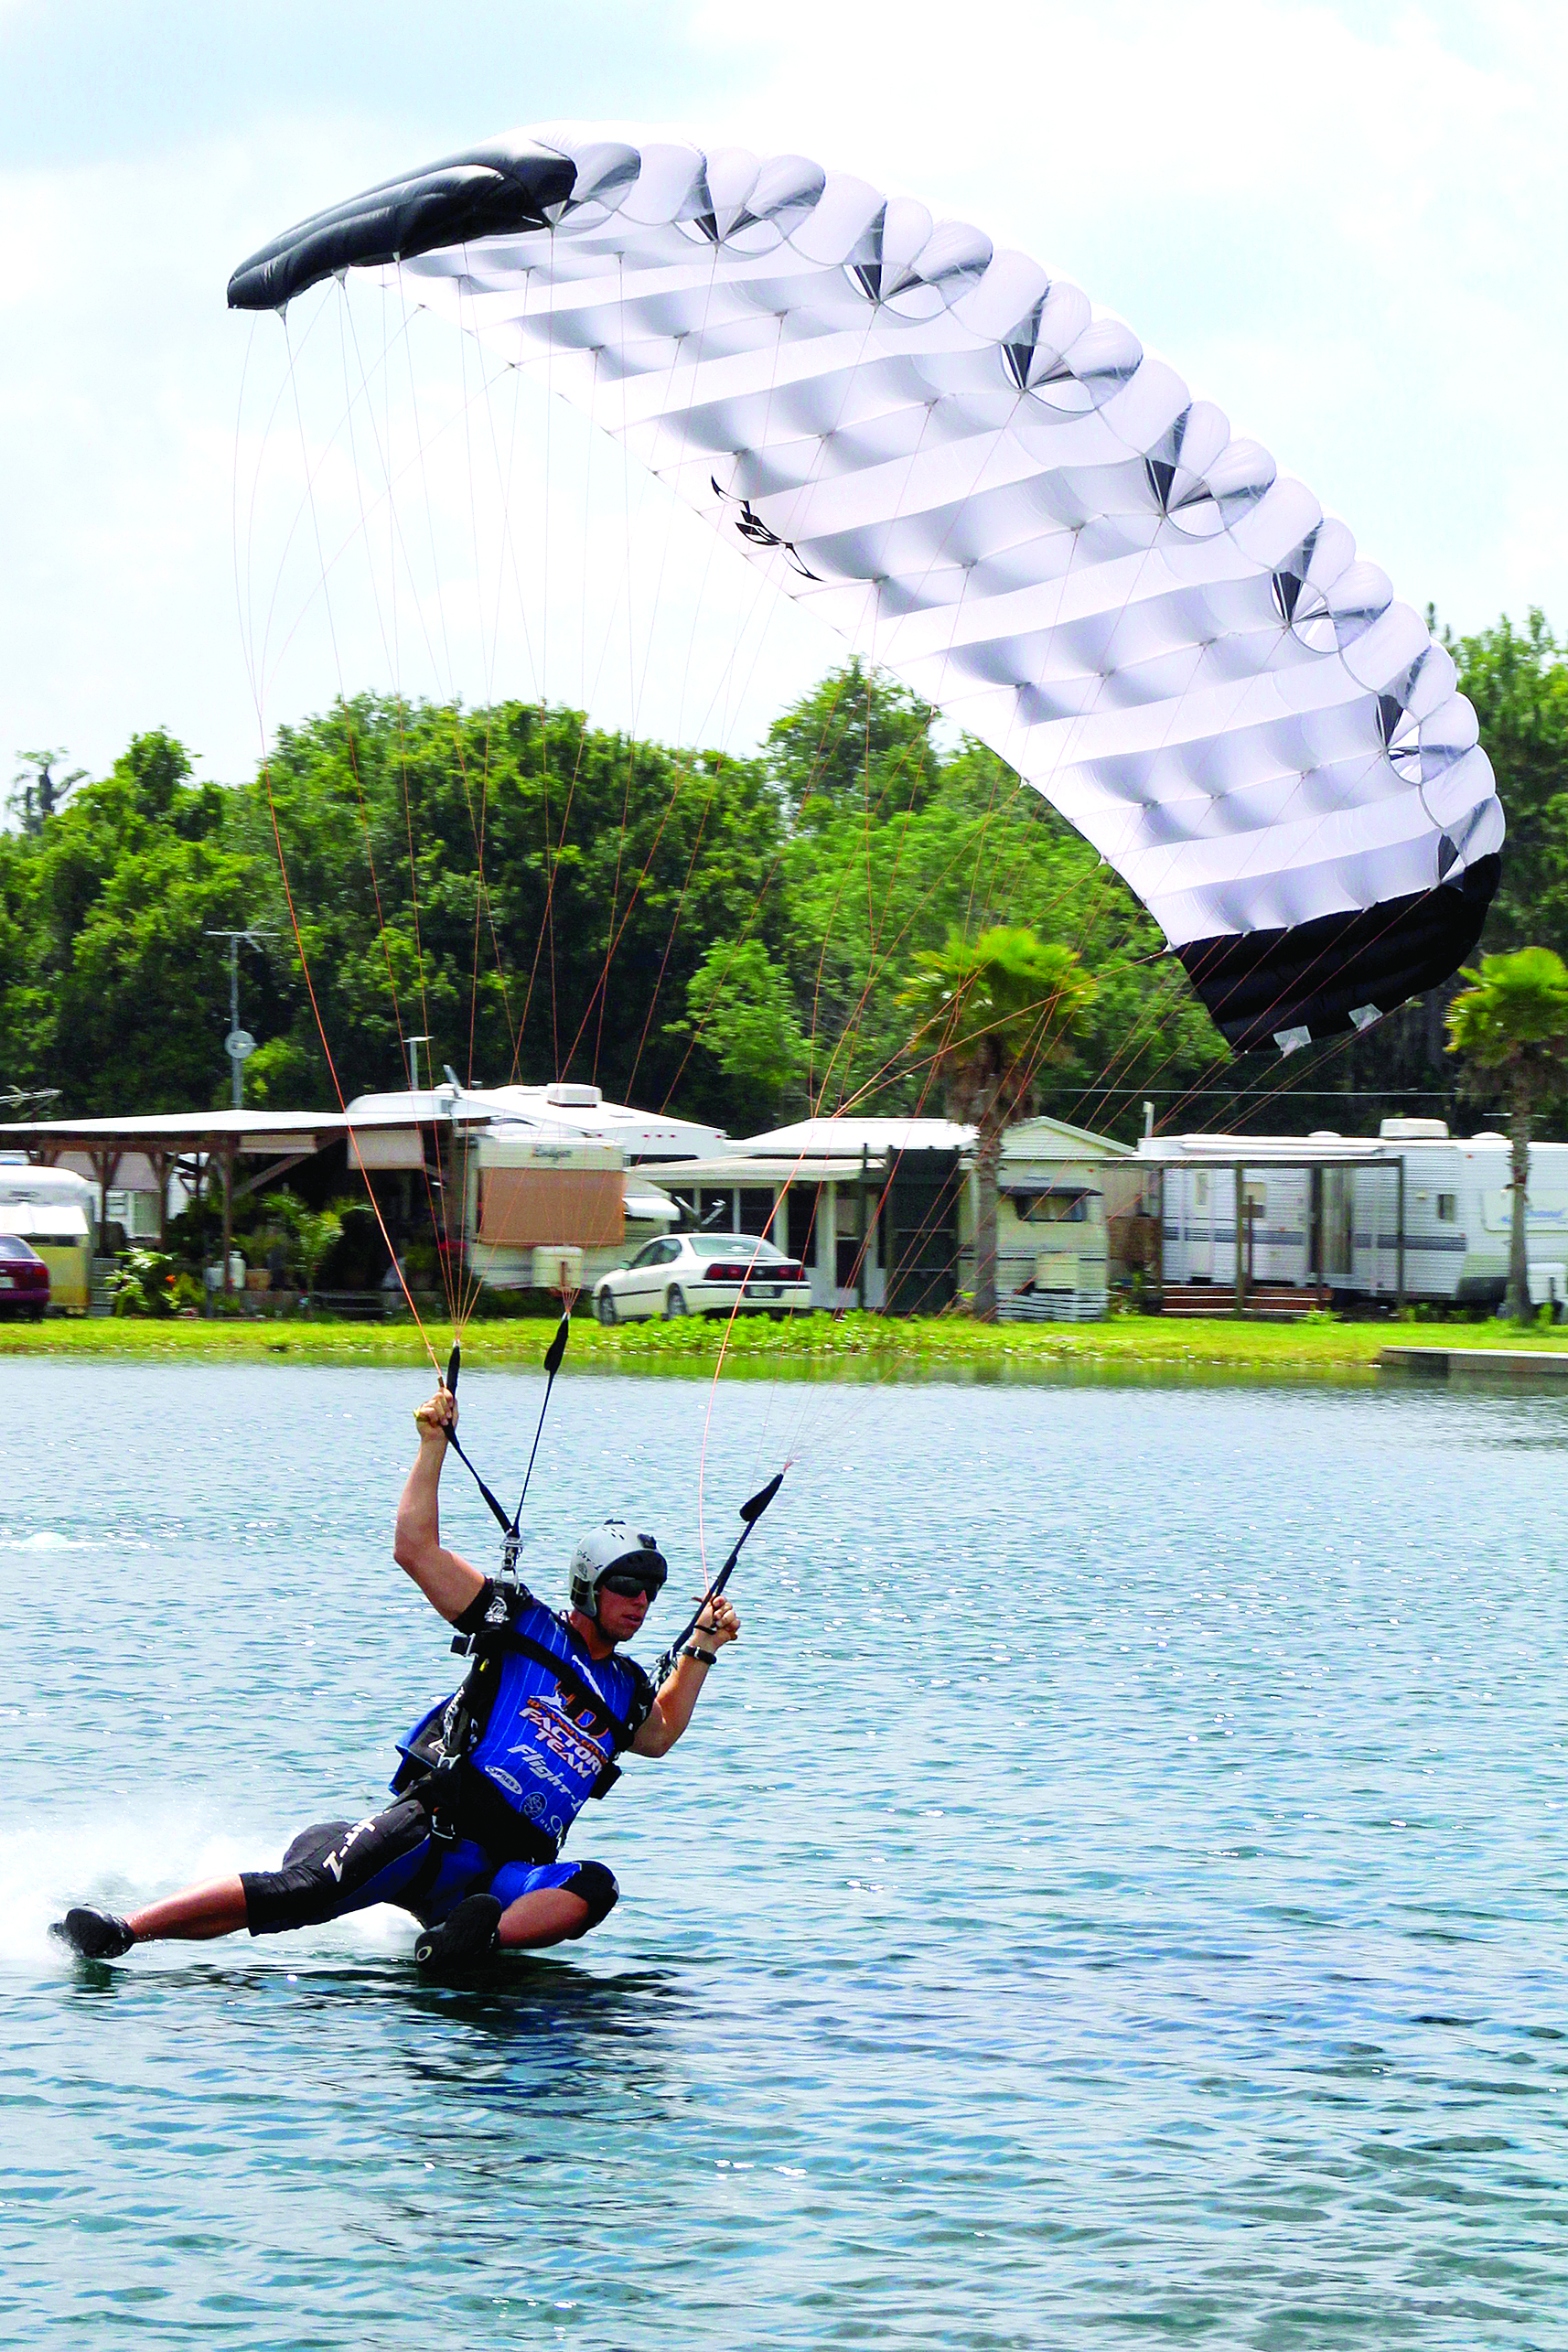 Canopy piloting more commonly known as u0027swoopingu0027 forces skyers to pick up  sc 1 st  The Laker/Lutz News & Skyingu0027s newest sport returns to Zephyrhills with nationals